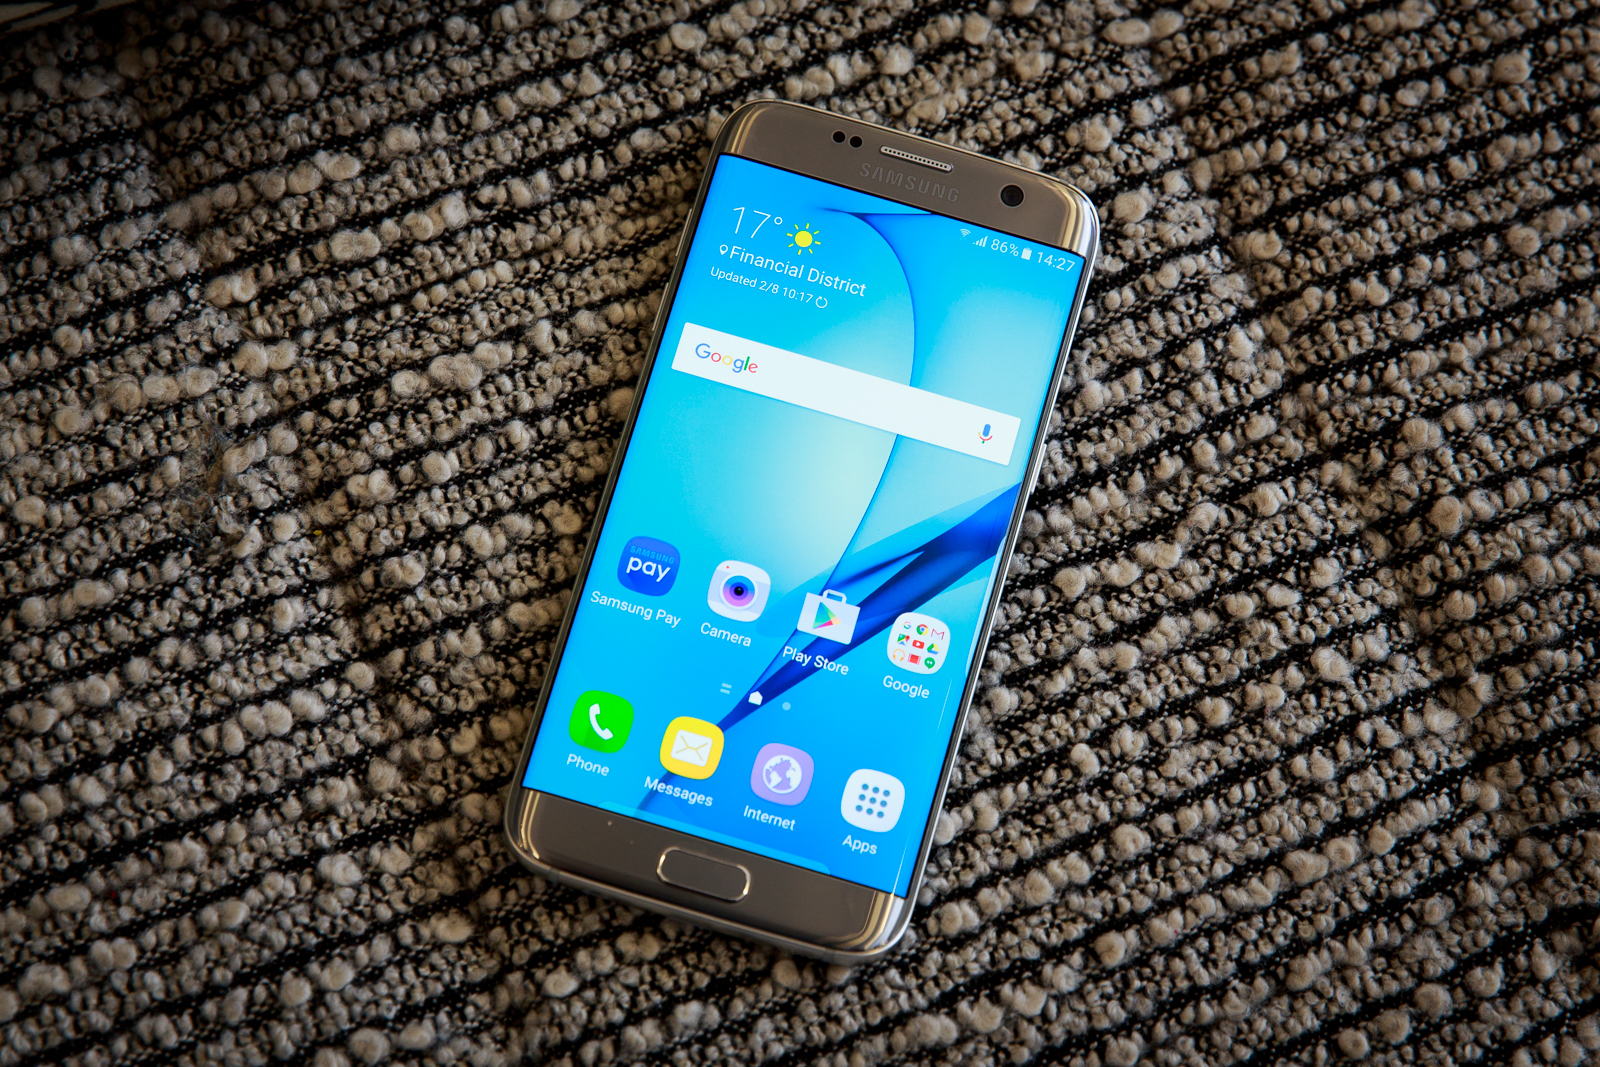 Samsung's Galaxy S7 is selling twice as fast as the Galaxy S6